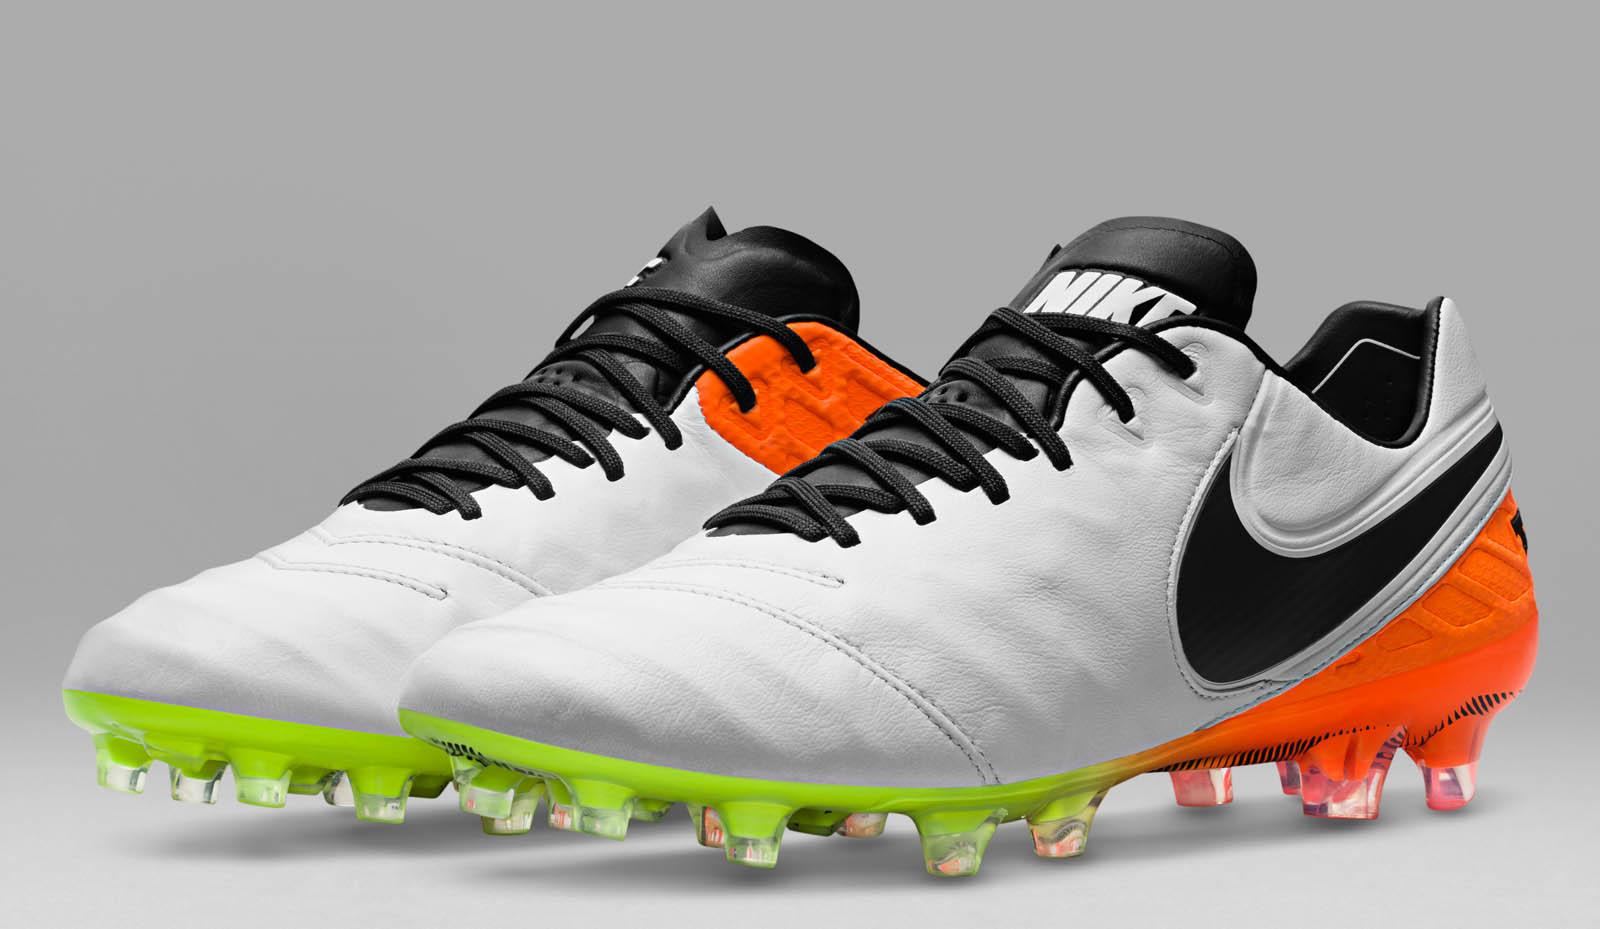 nike tiempo legend 6 2016 radiant reveal boots released. Black Bedroom Furniture Sets. Home Design Ideas